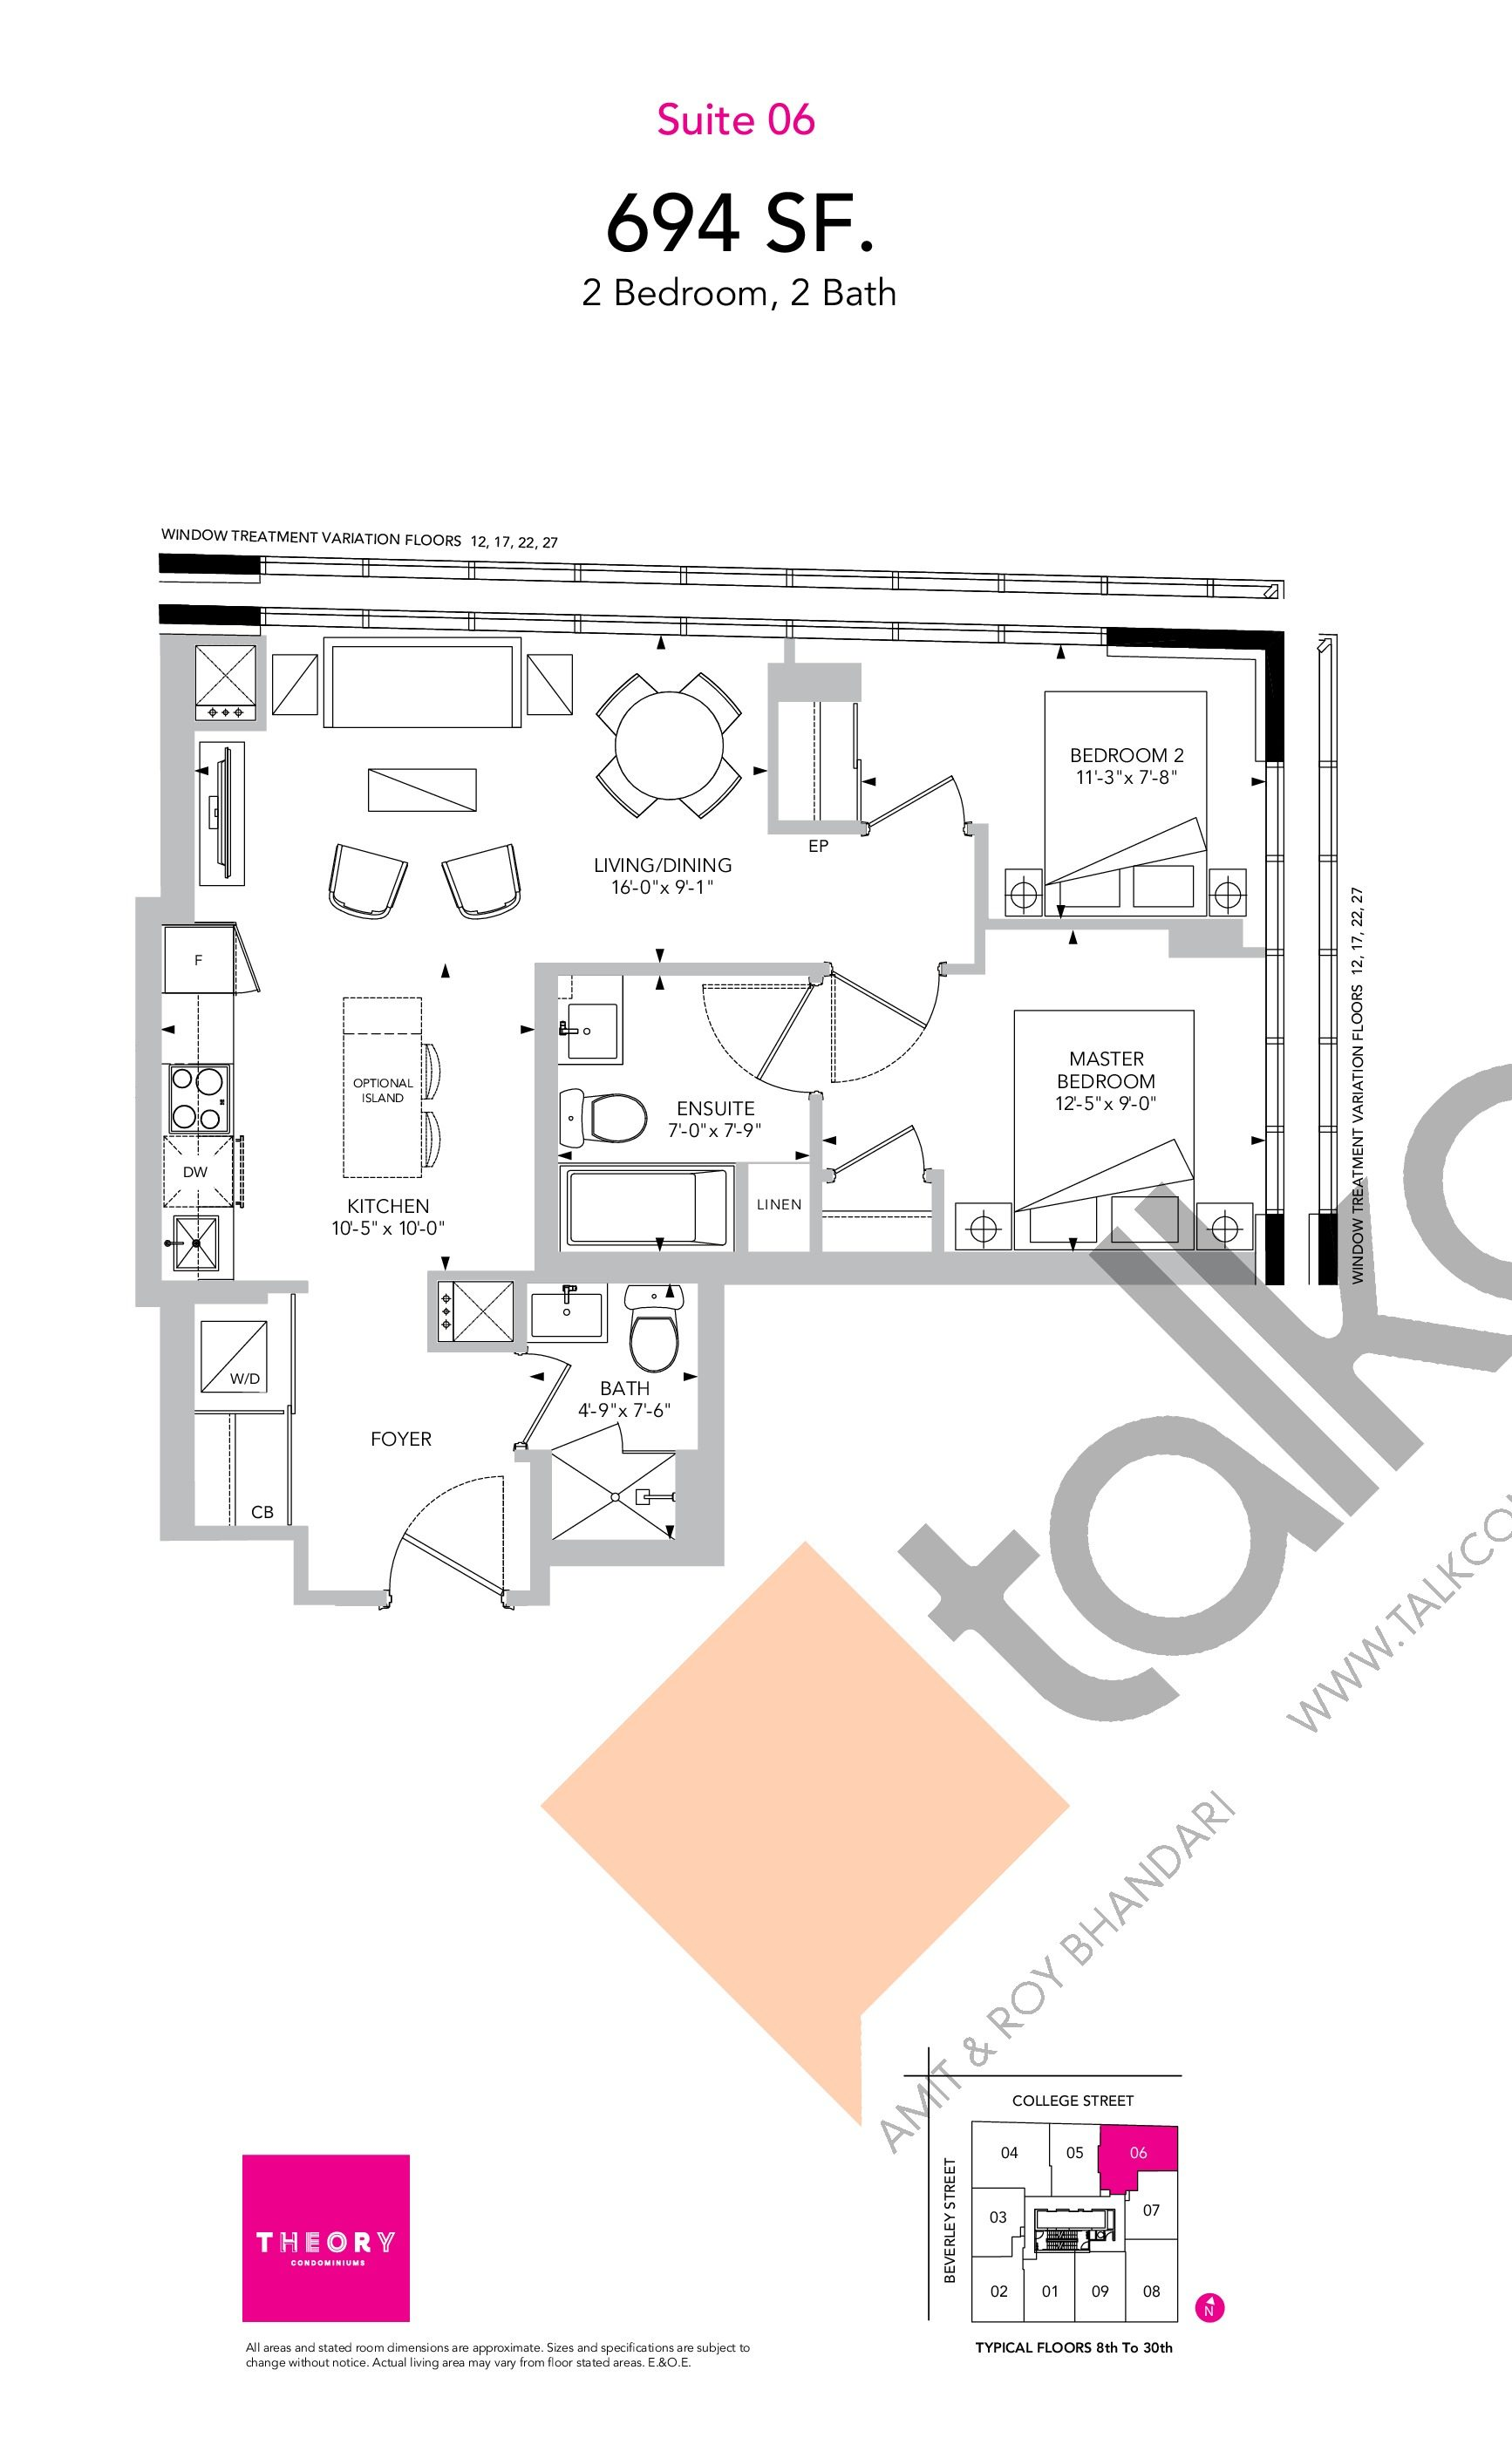 Suite 06 Floor Plan at Theory Condos - 694 sq.ft